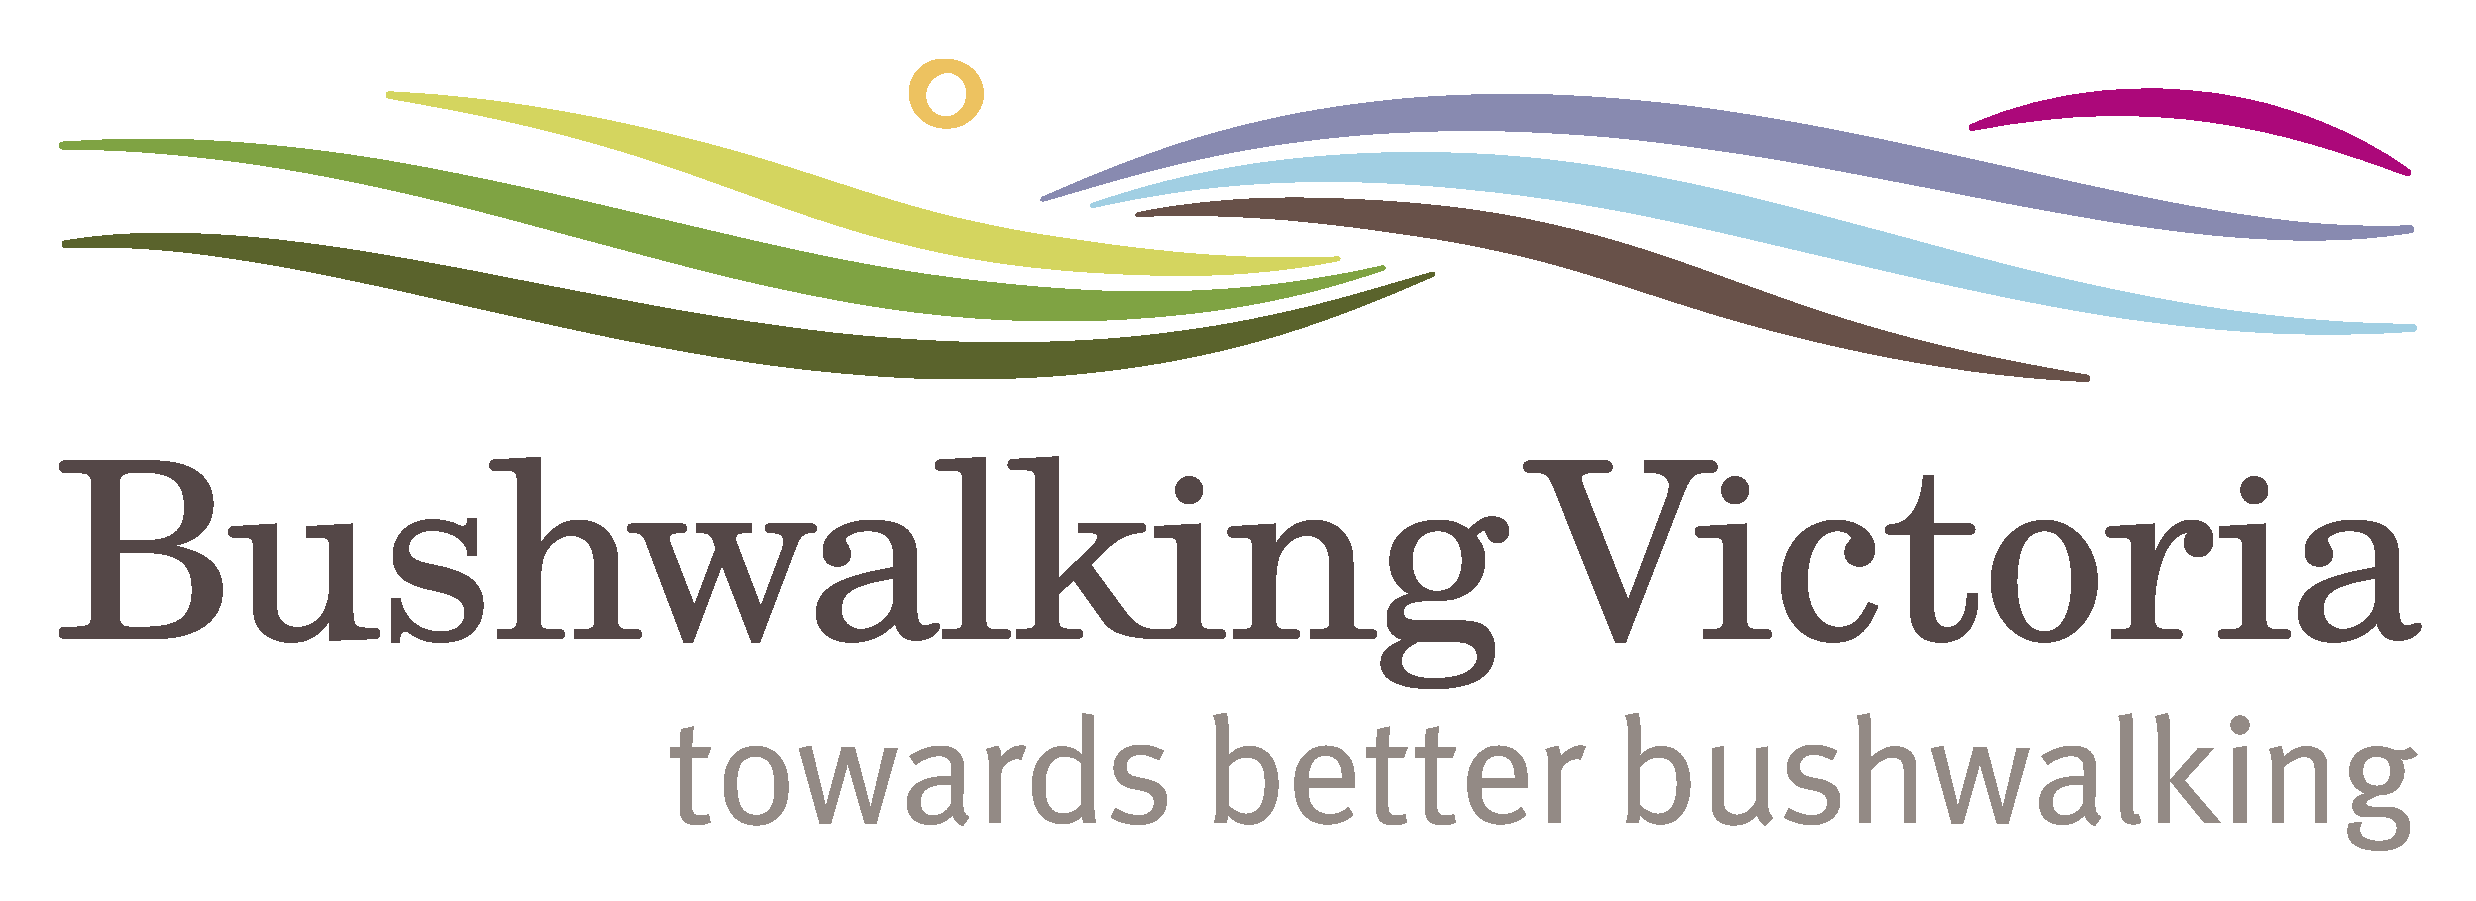 Bushwalking Vic logo with tagline 2 for websites 1